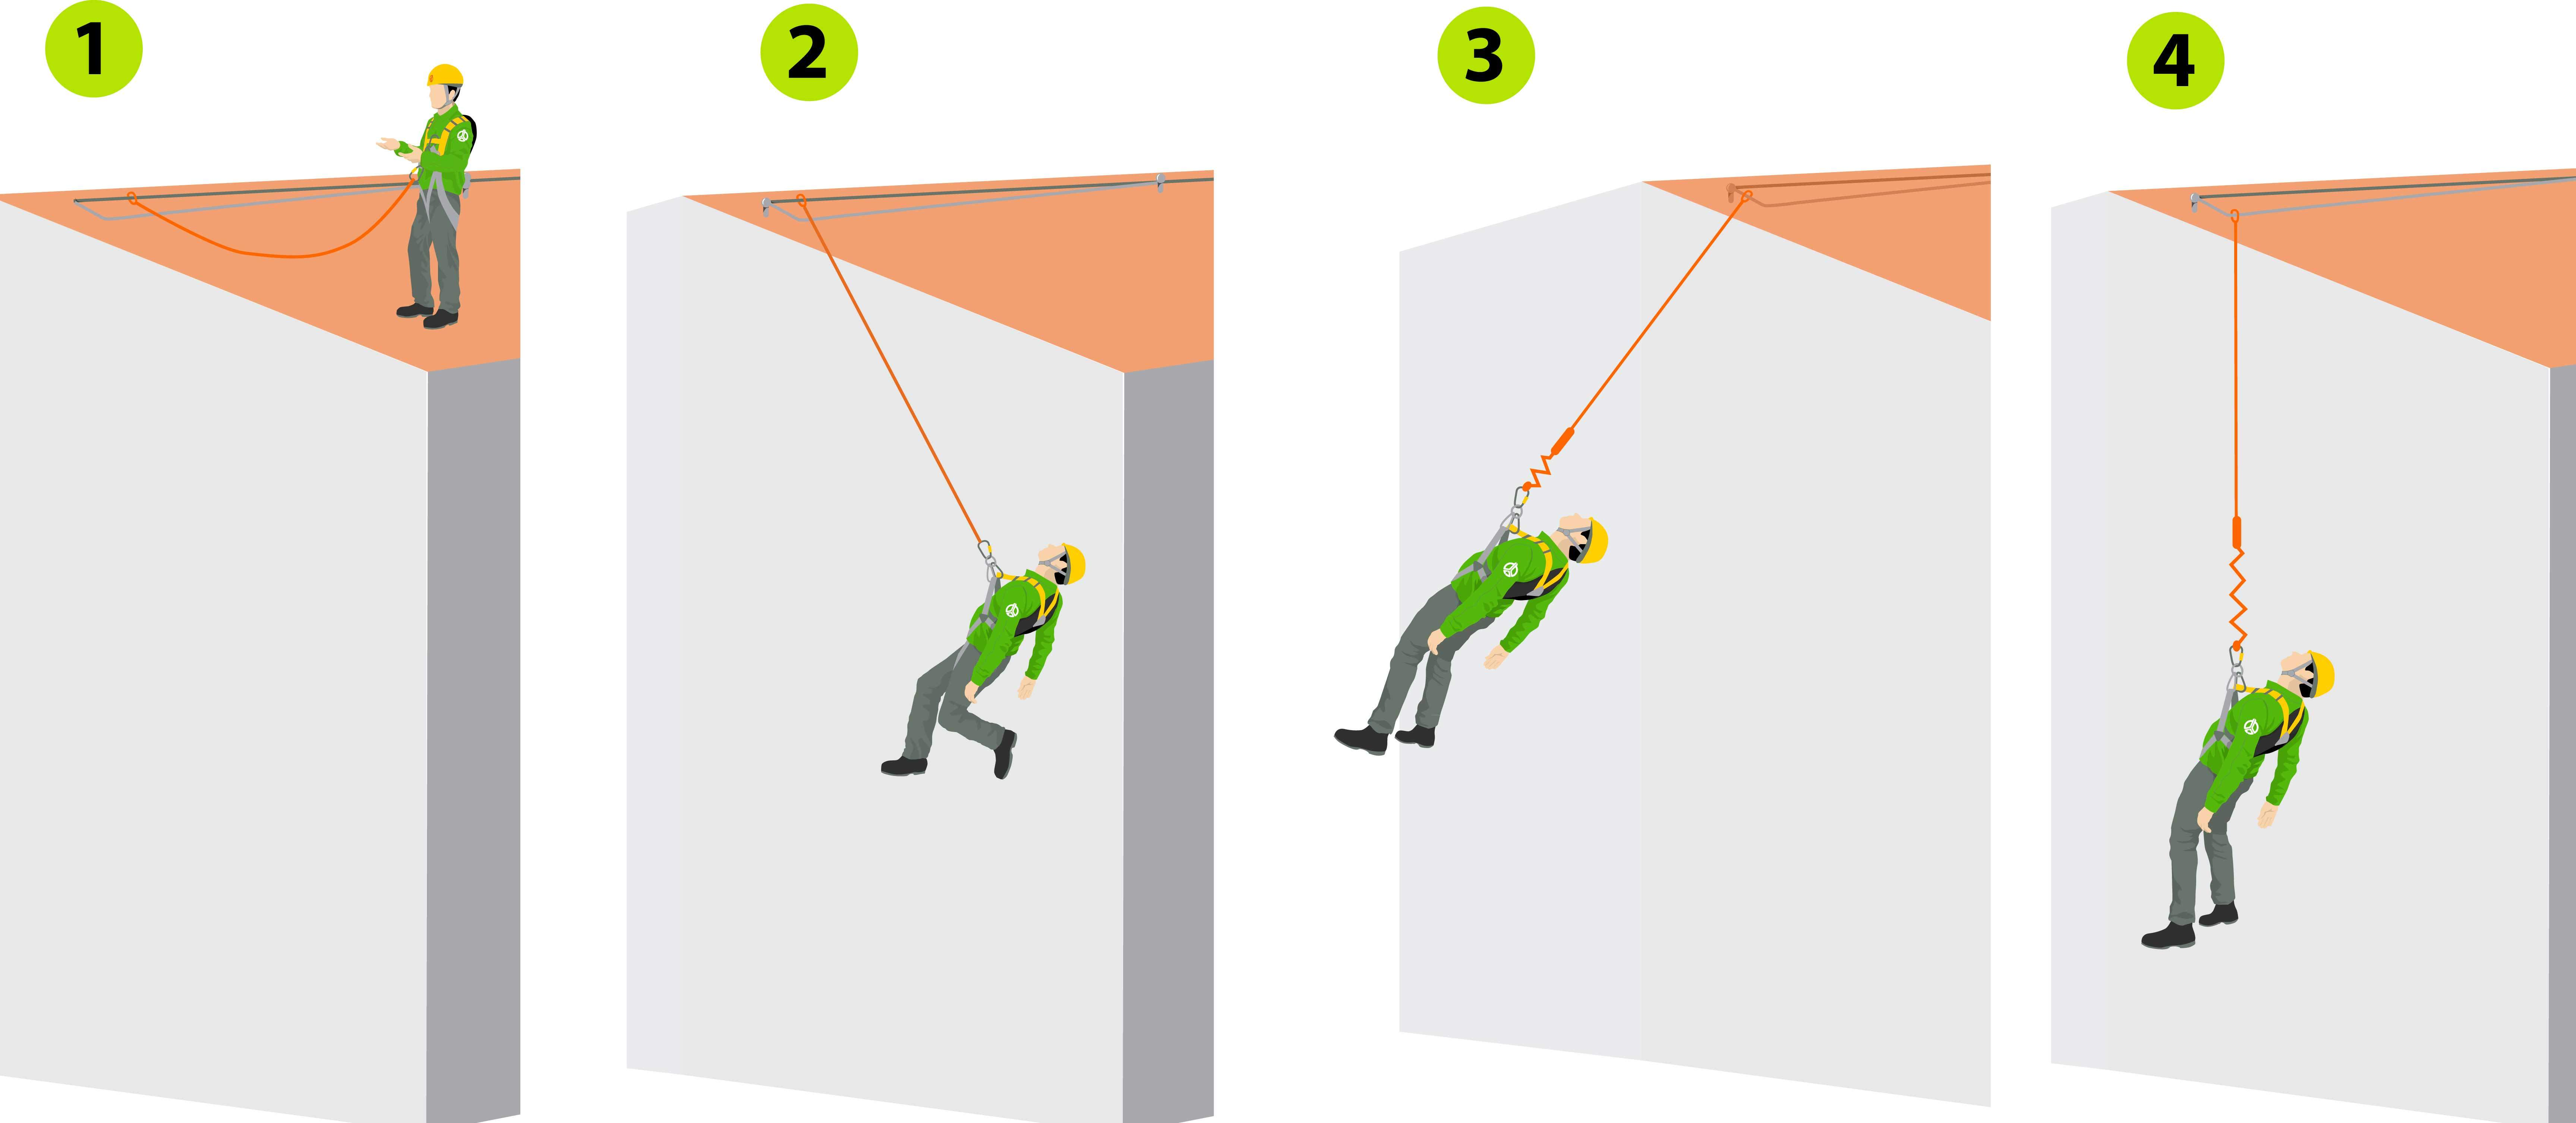 Swing or pendulum falls - Elytra: SAFETY, CONDUCT and MAGNETS